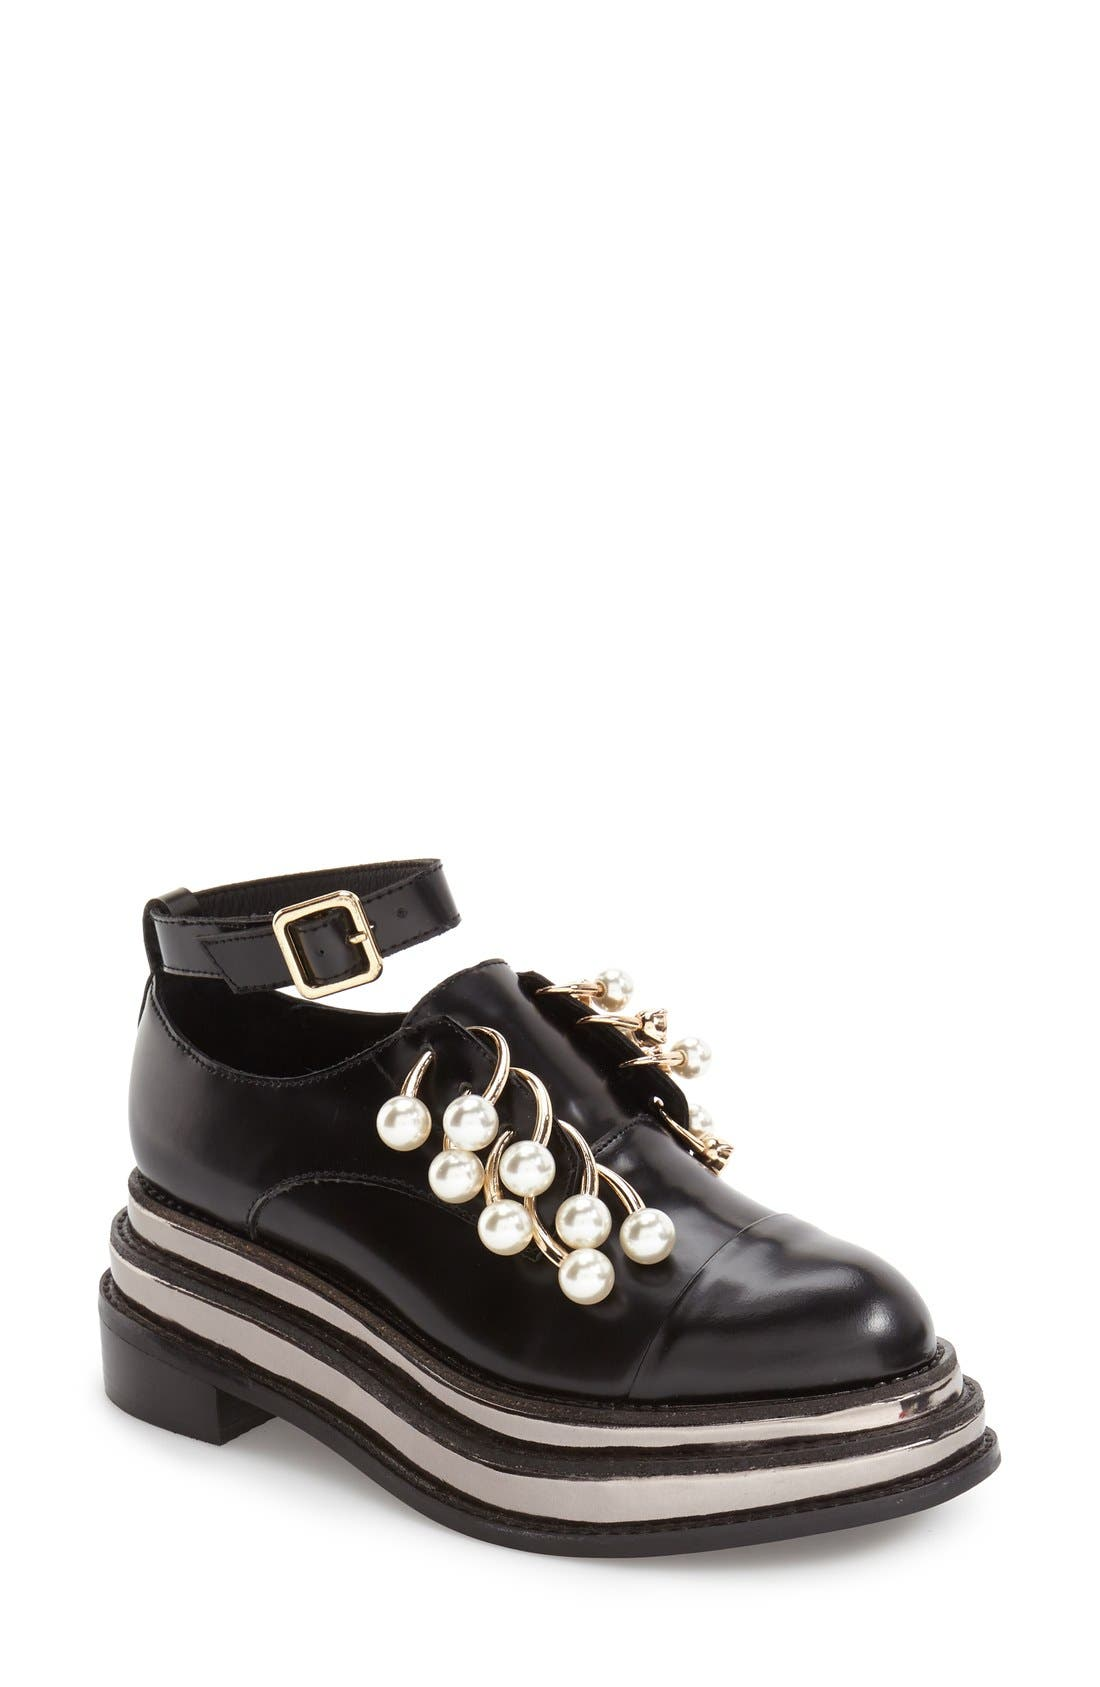 Alternate Image 1 Selected - Jeffrey Campbell 'Jagged' Crystal Embellished No-Lace Platform Oxford (Women)